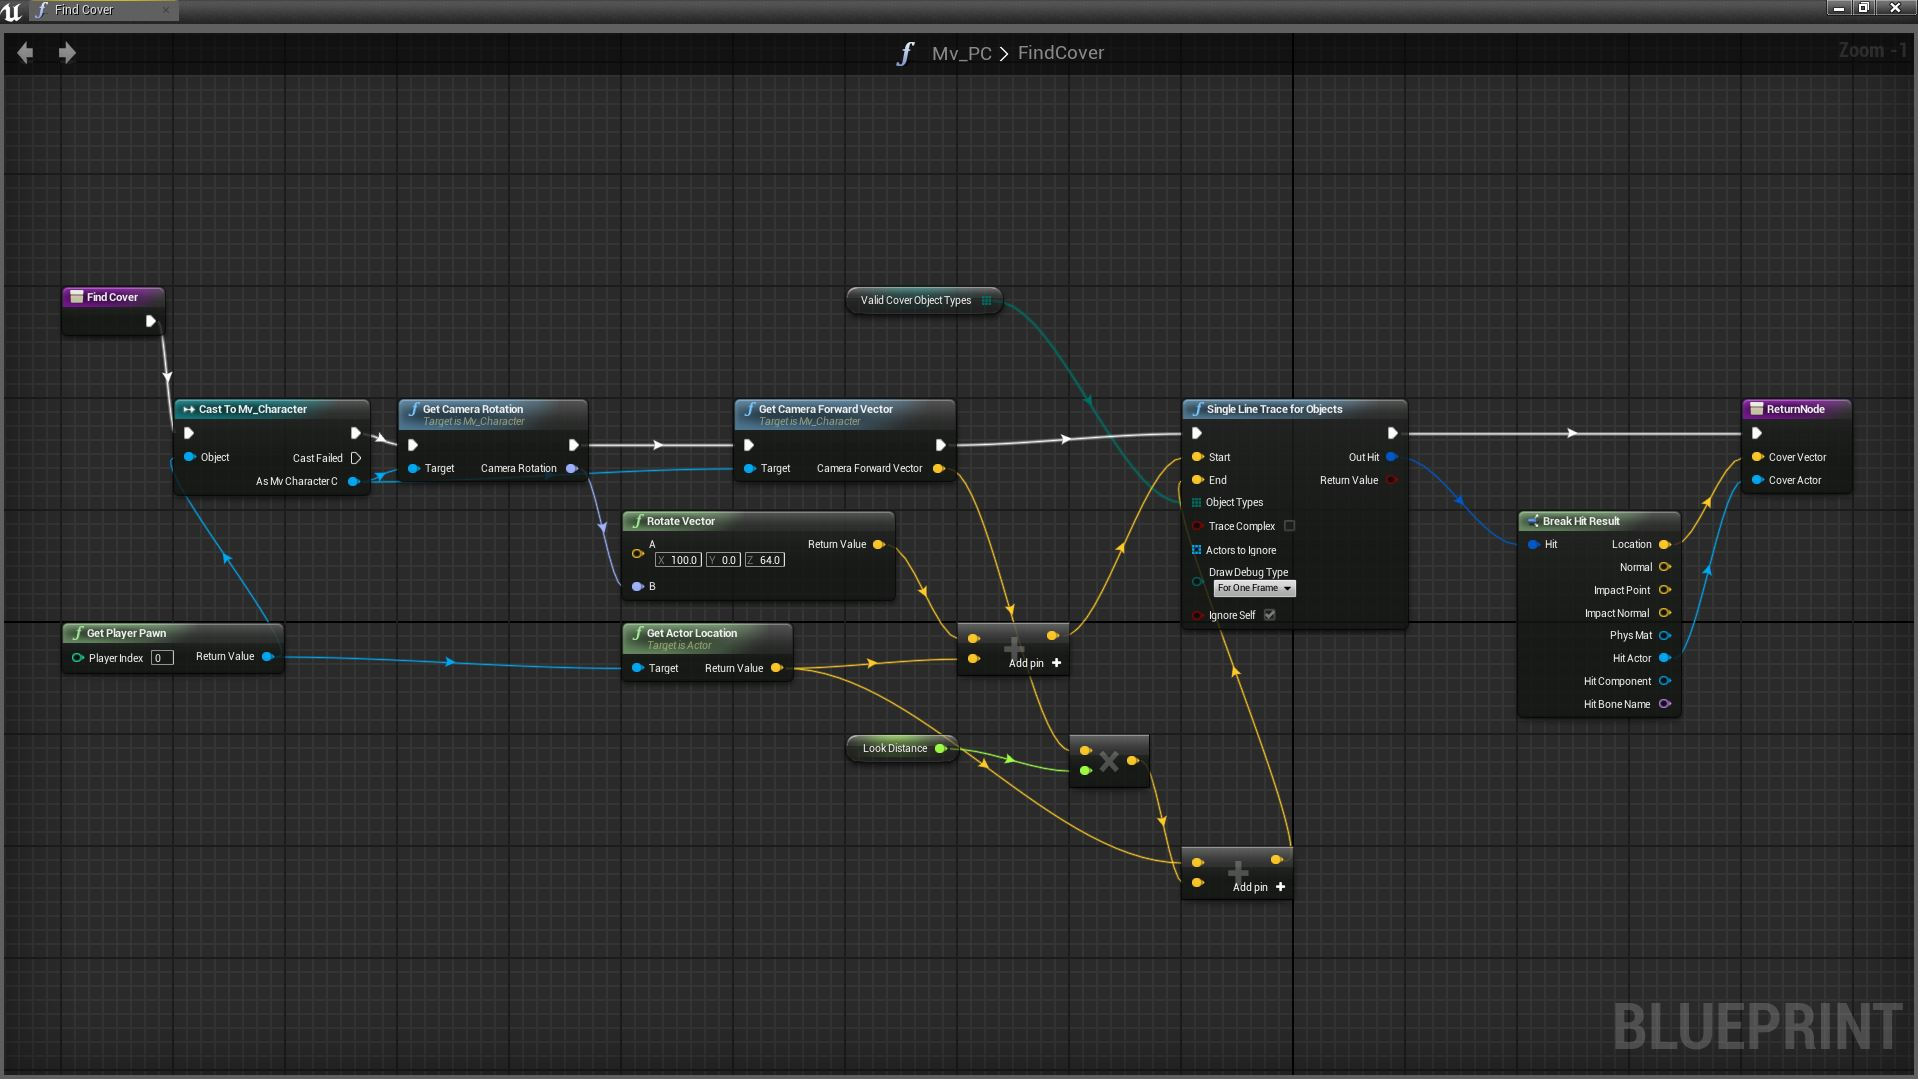 Using blueprints in unreal engine 4 finding stuff in front of us malvernweather Choice Image